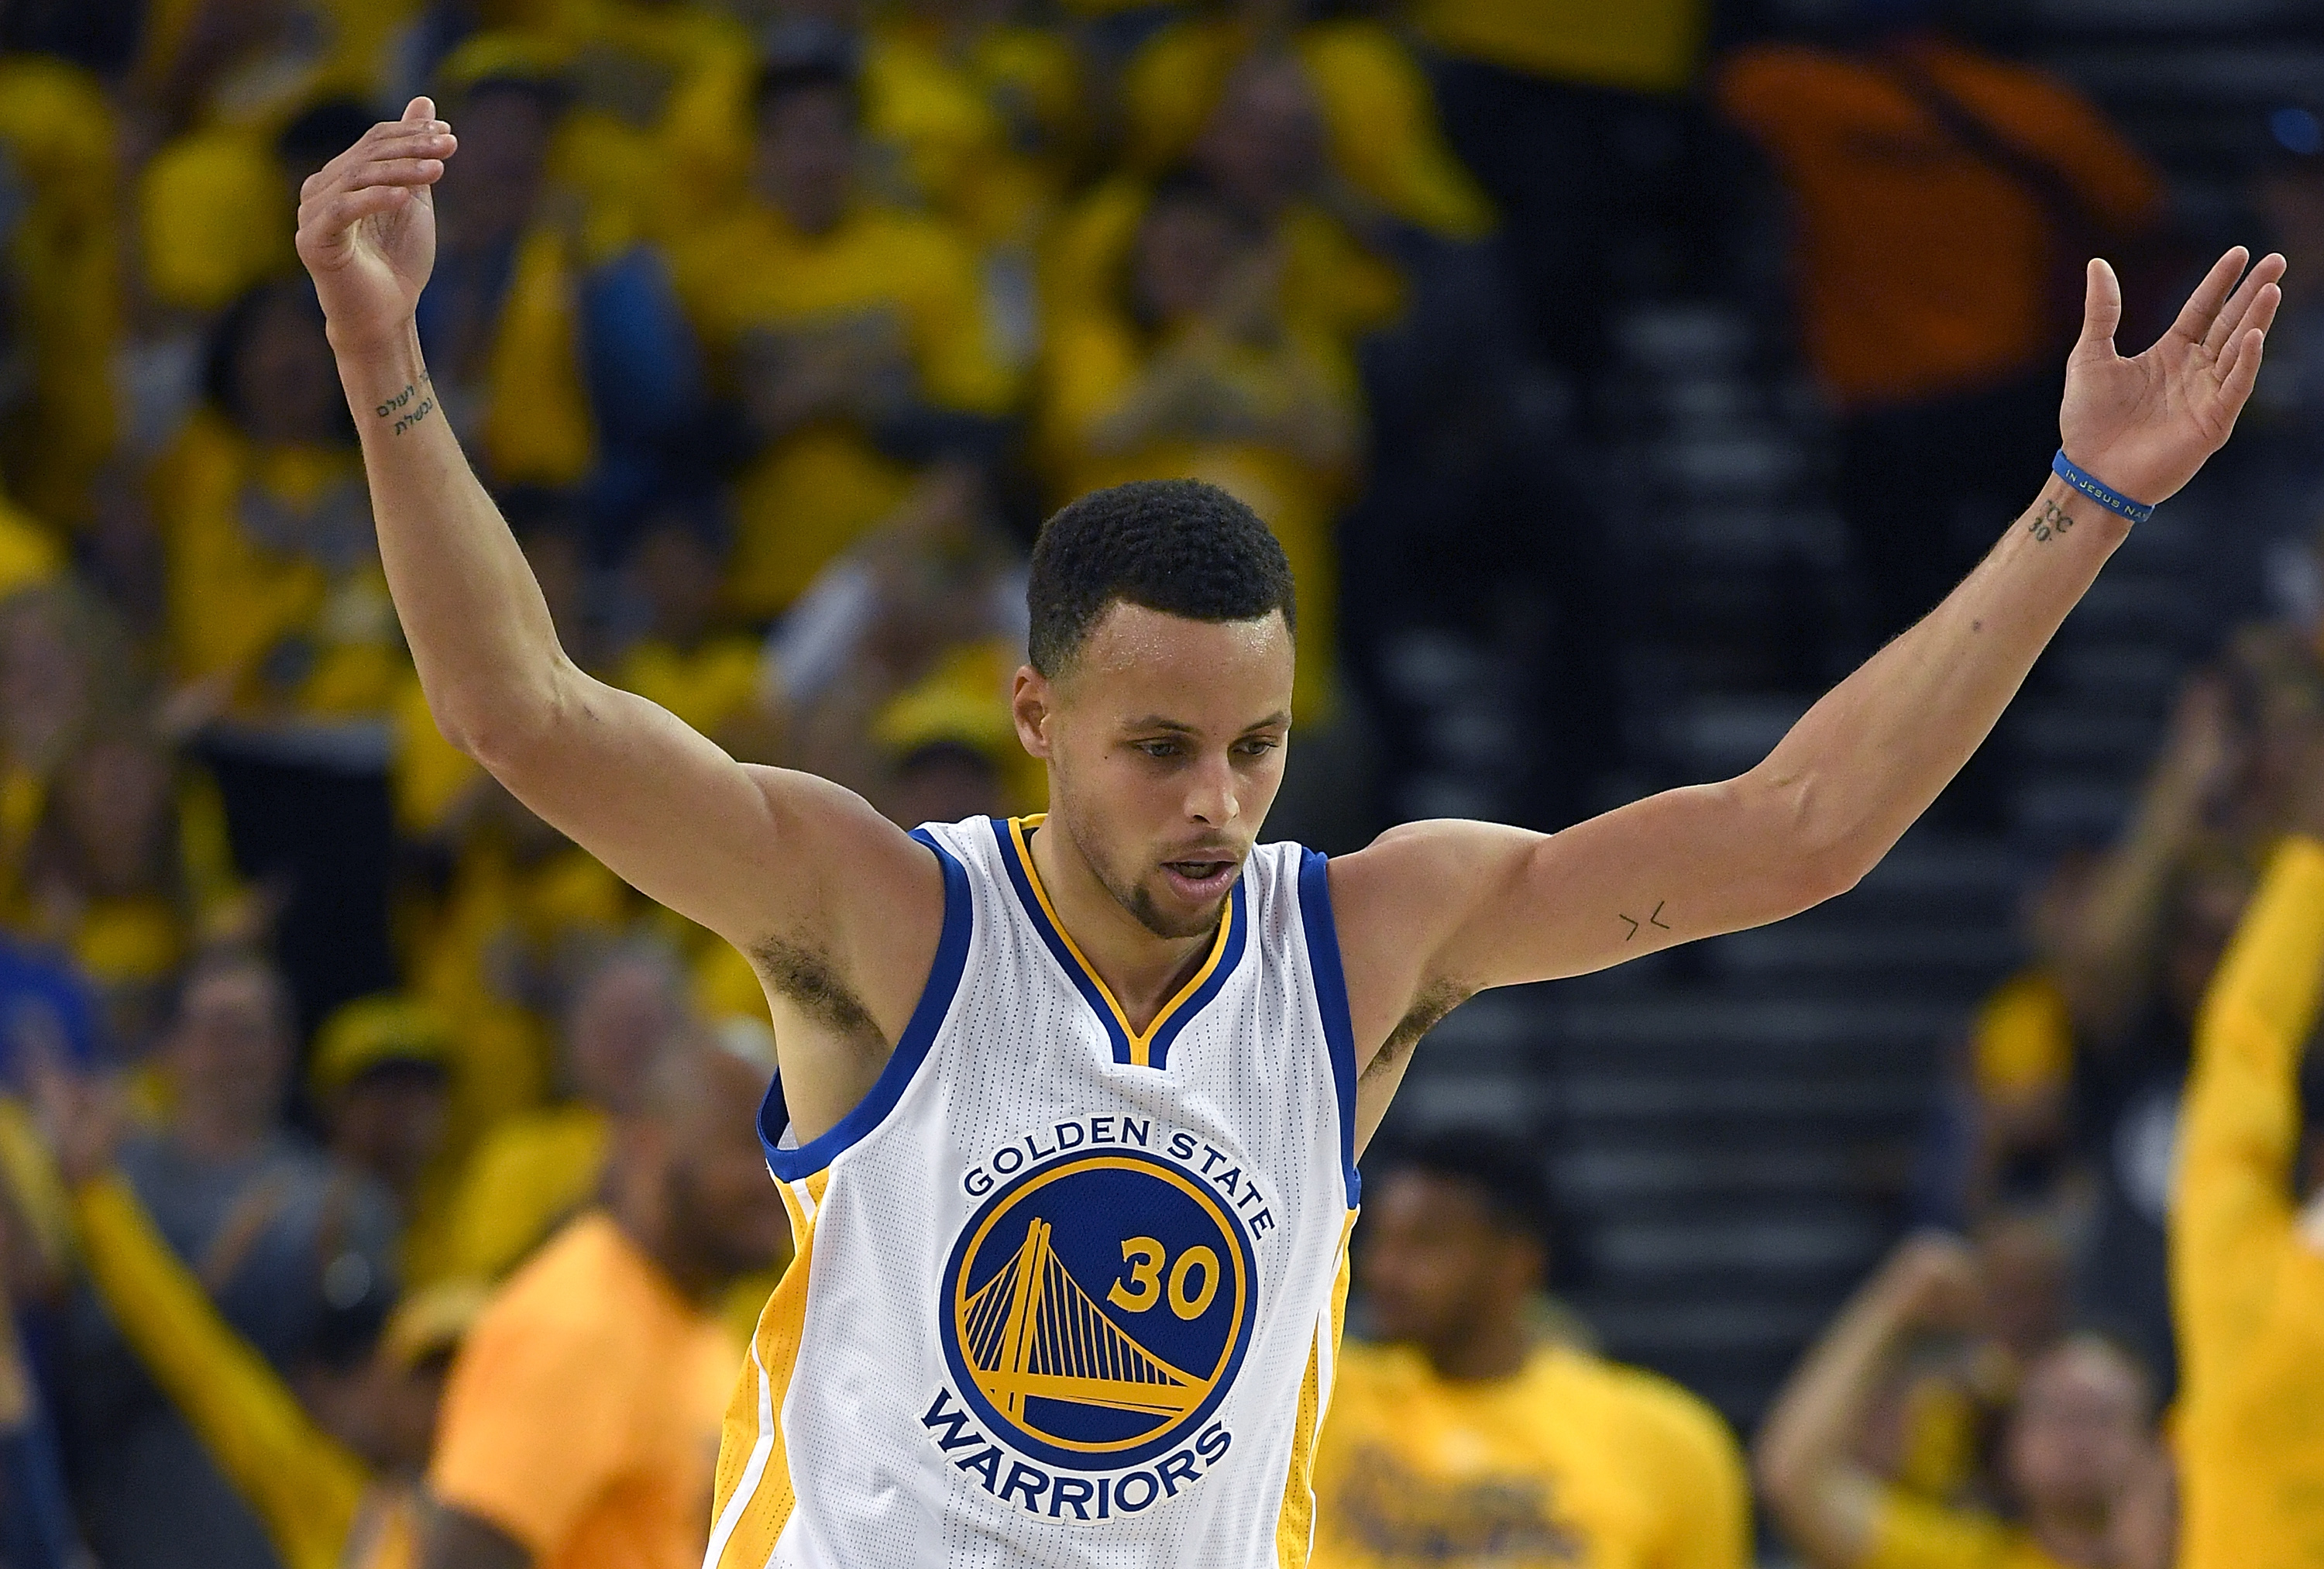 OAKLAND, CA - APRIL 16:  Stephen Curry #30 of the Golden State Warriors reacts after hitting a three-point shot against the Houston Rockets in the second quarter in Game One of the Western Conference Quarterfinals during the 2016 NBA Playoffs at ORACLE Ar